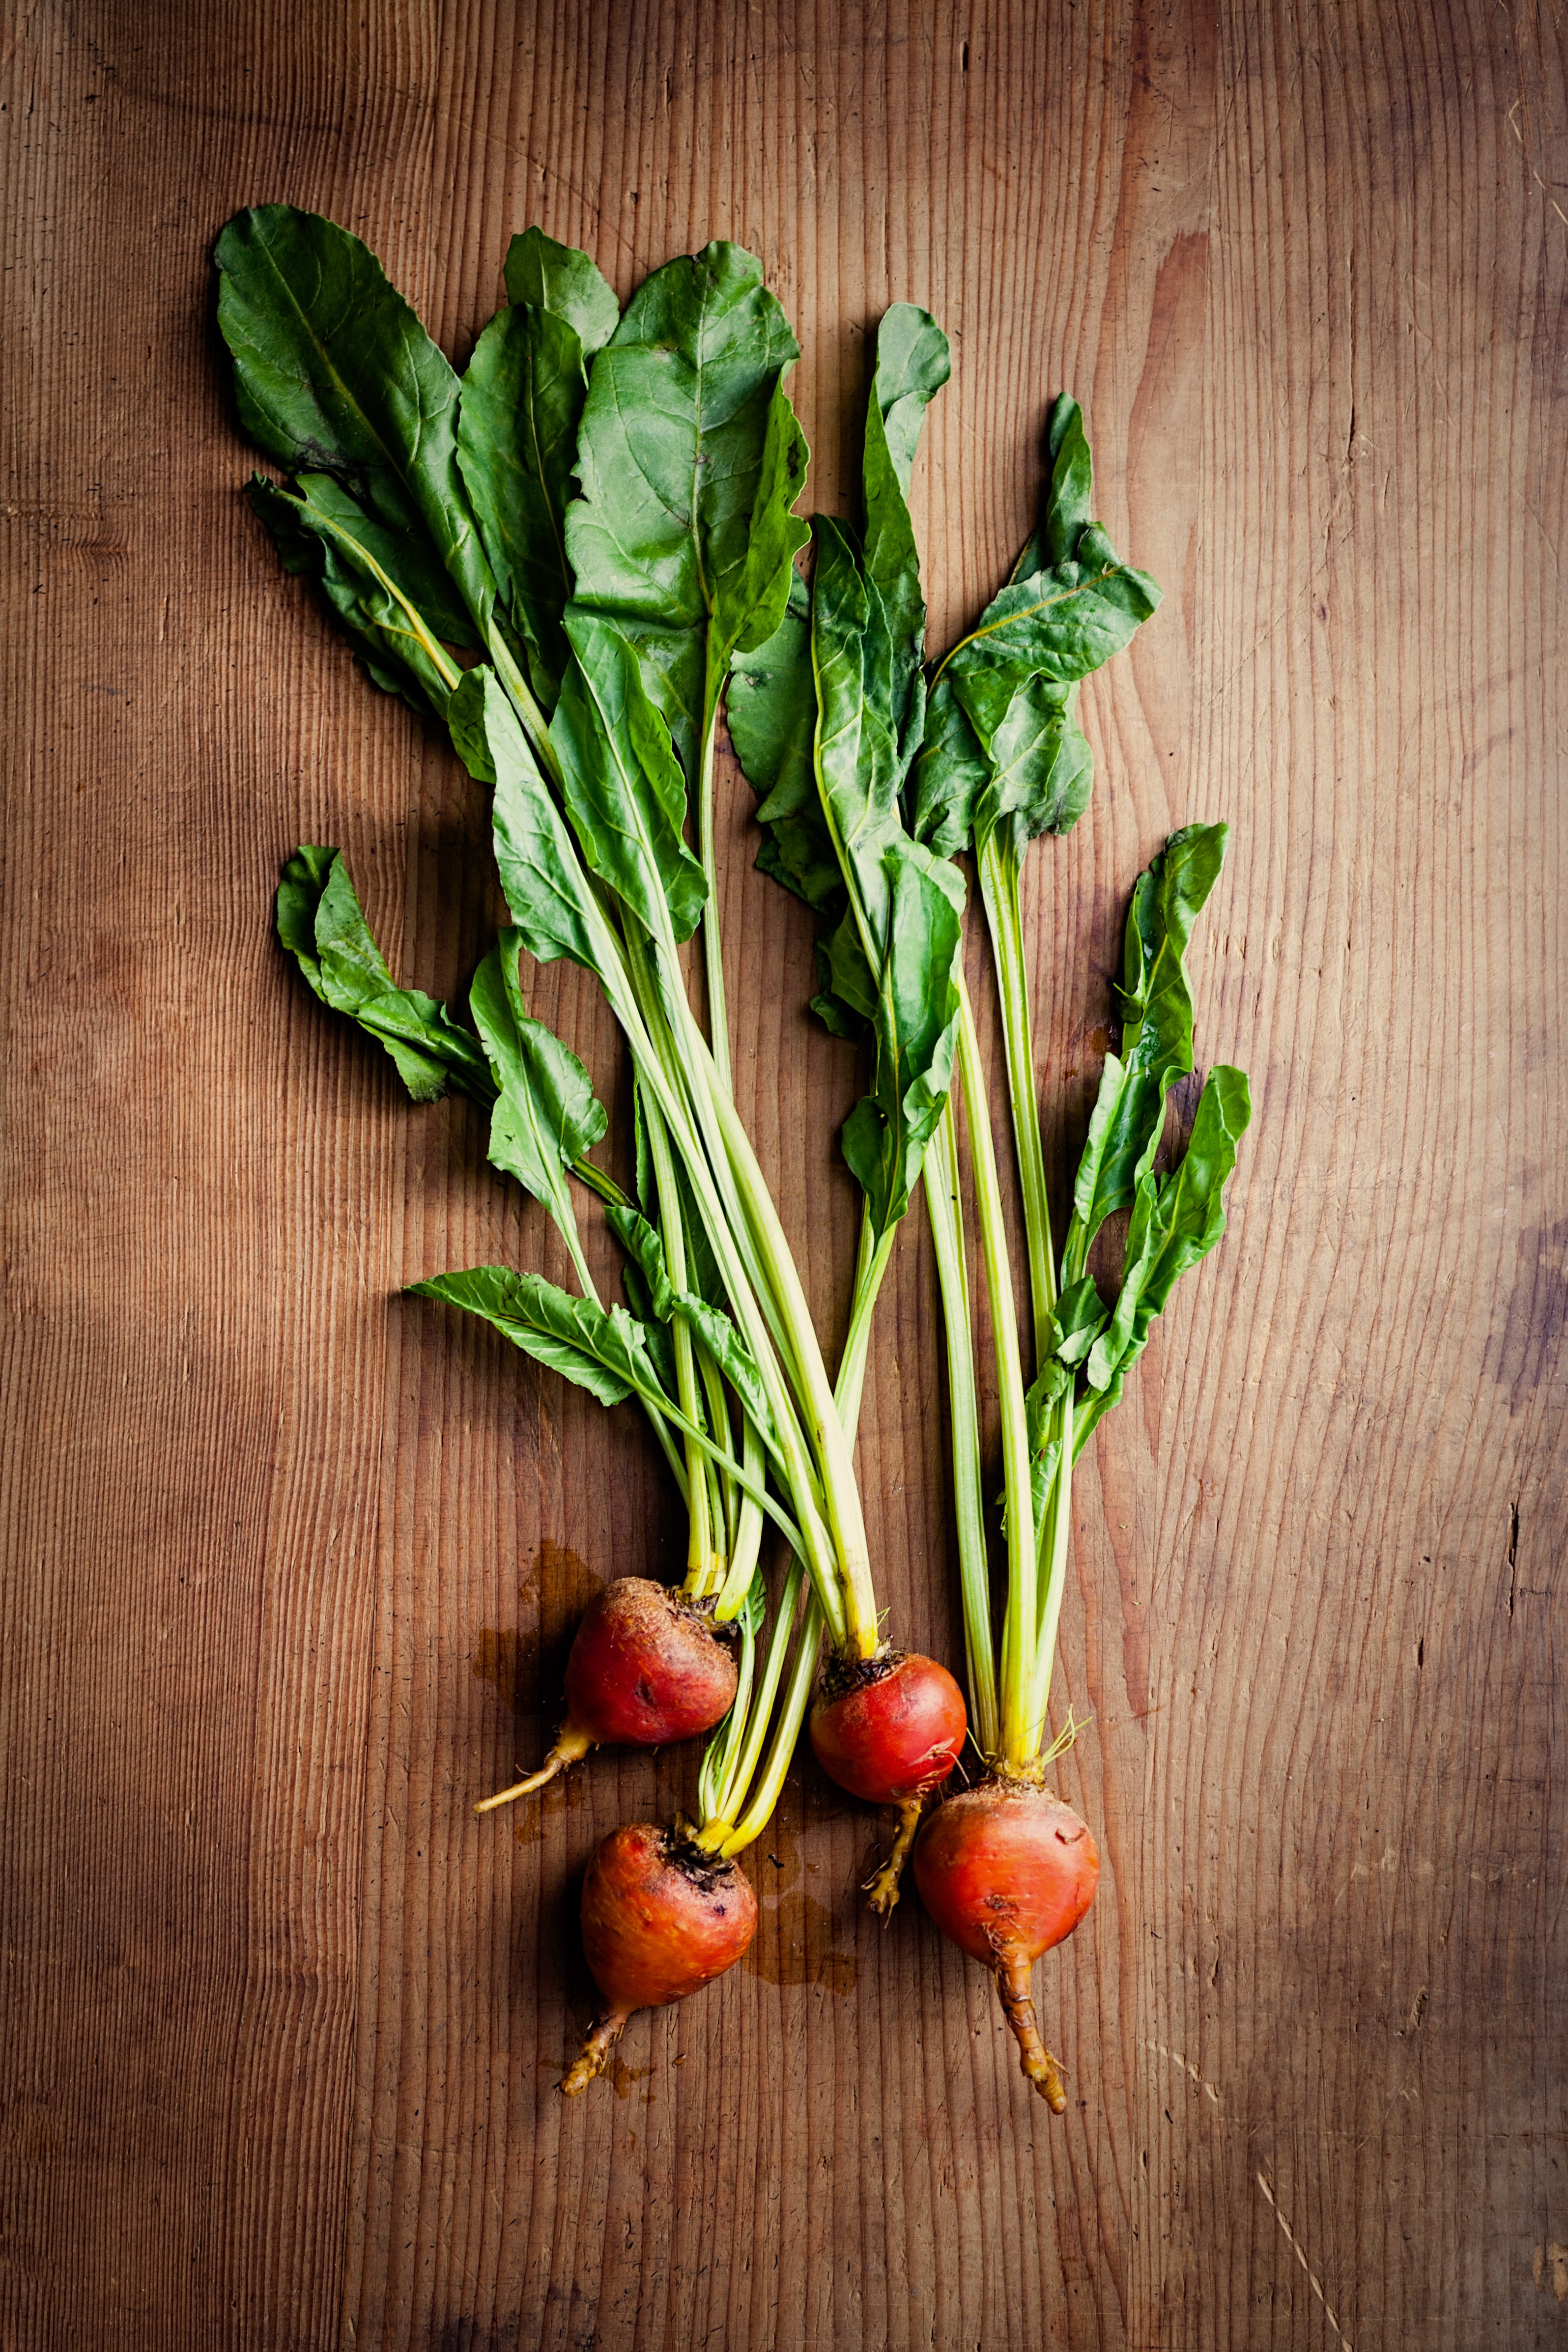 green and red vegetable on brown surface